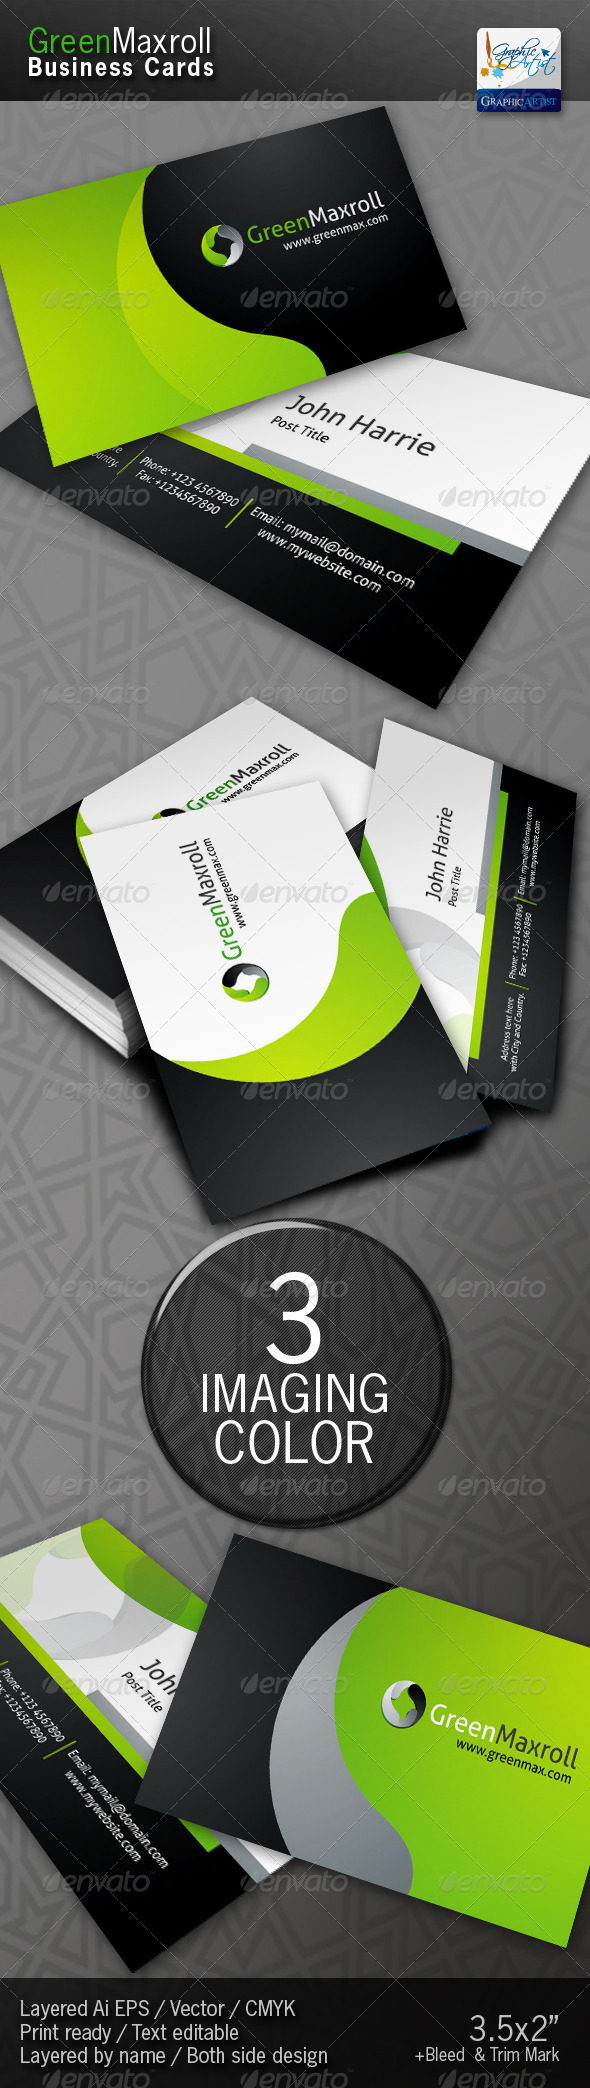 GreenMaxroll Business Cards - Corporate Business Cards